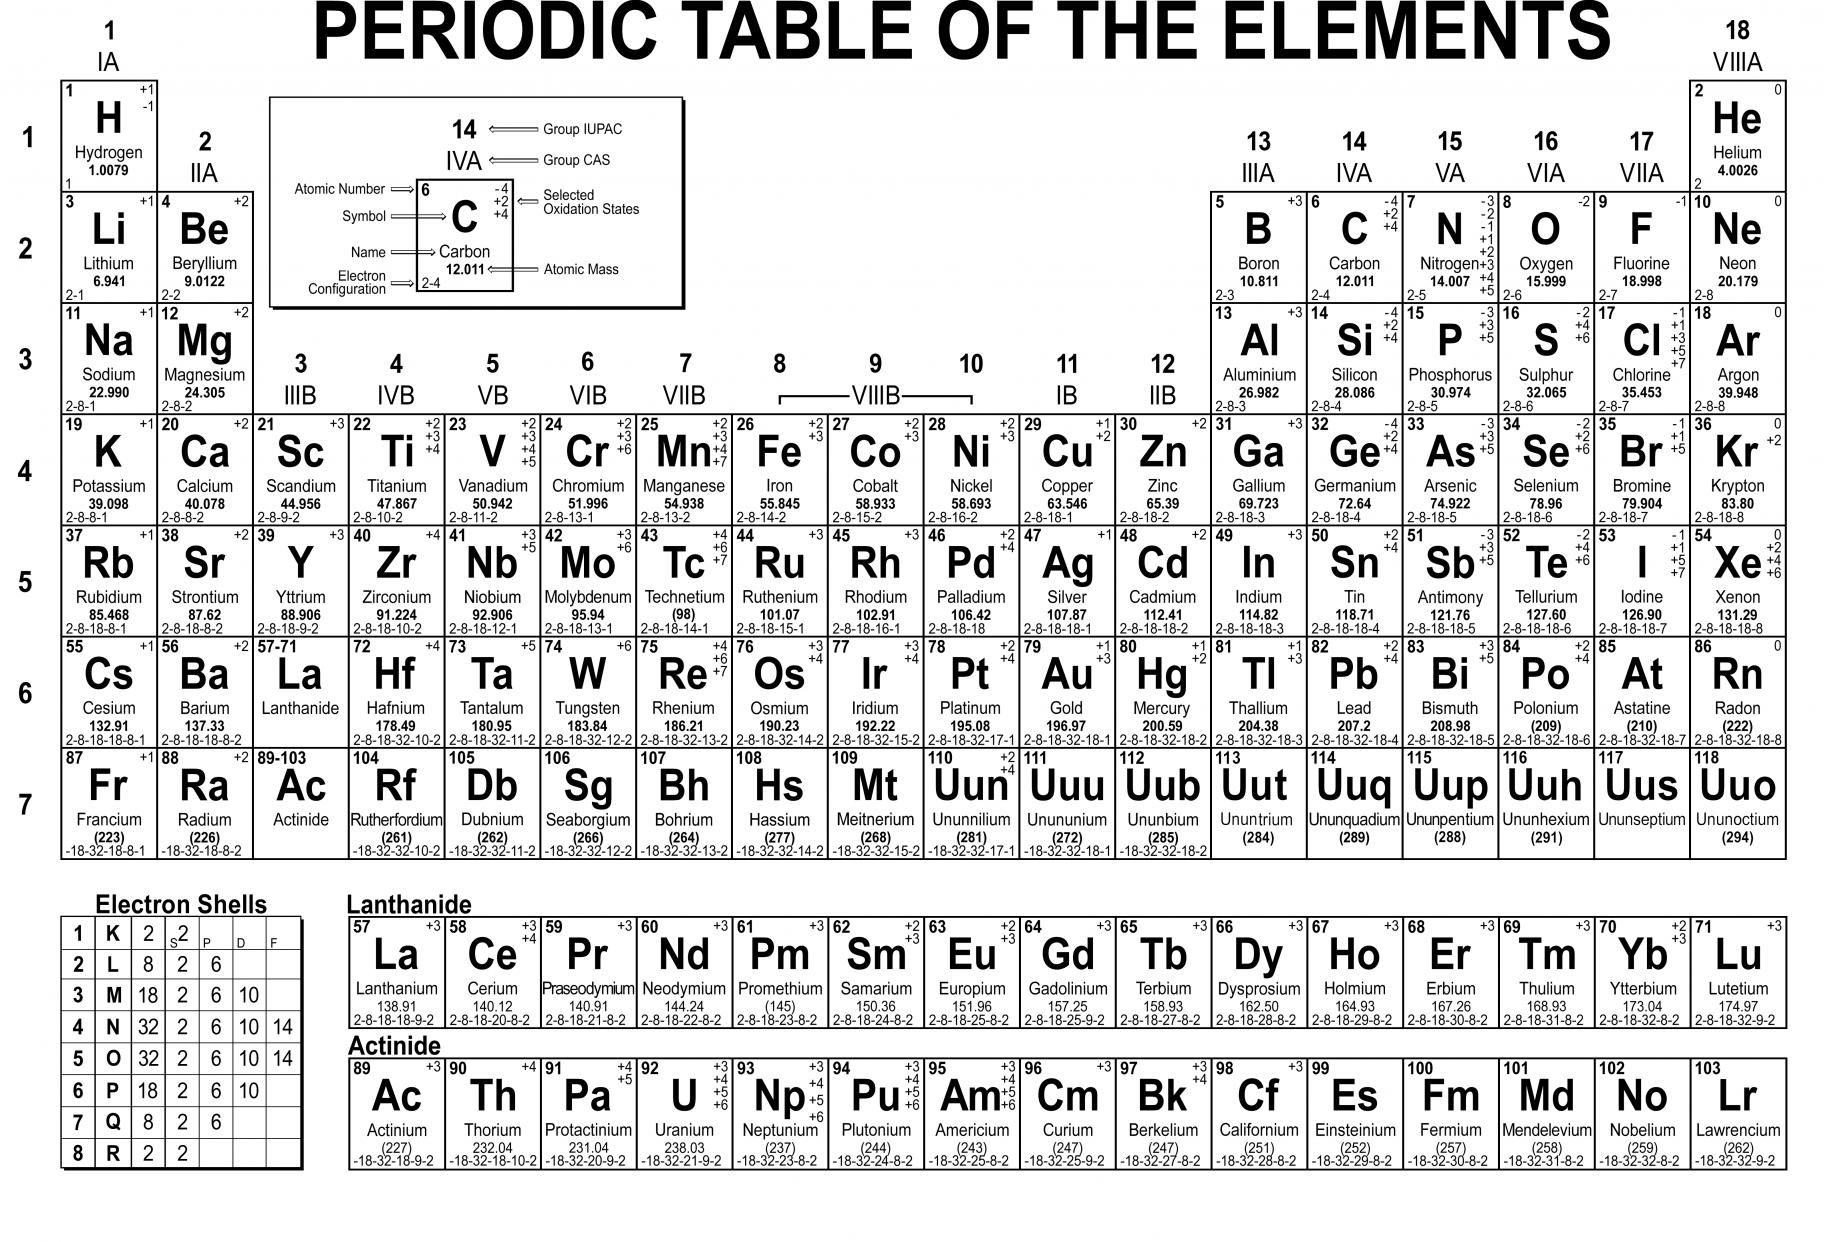 Chemistry regents periodic table google search chemistry pics chemistry regents periodic table google search gamestrikefo Image collections